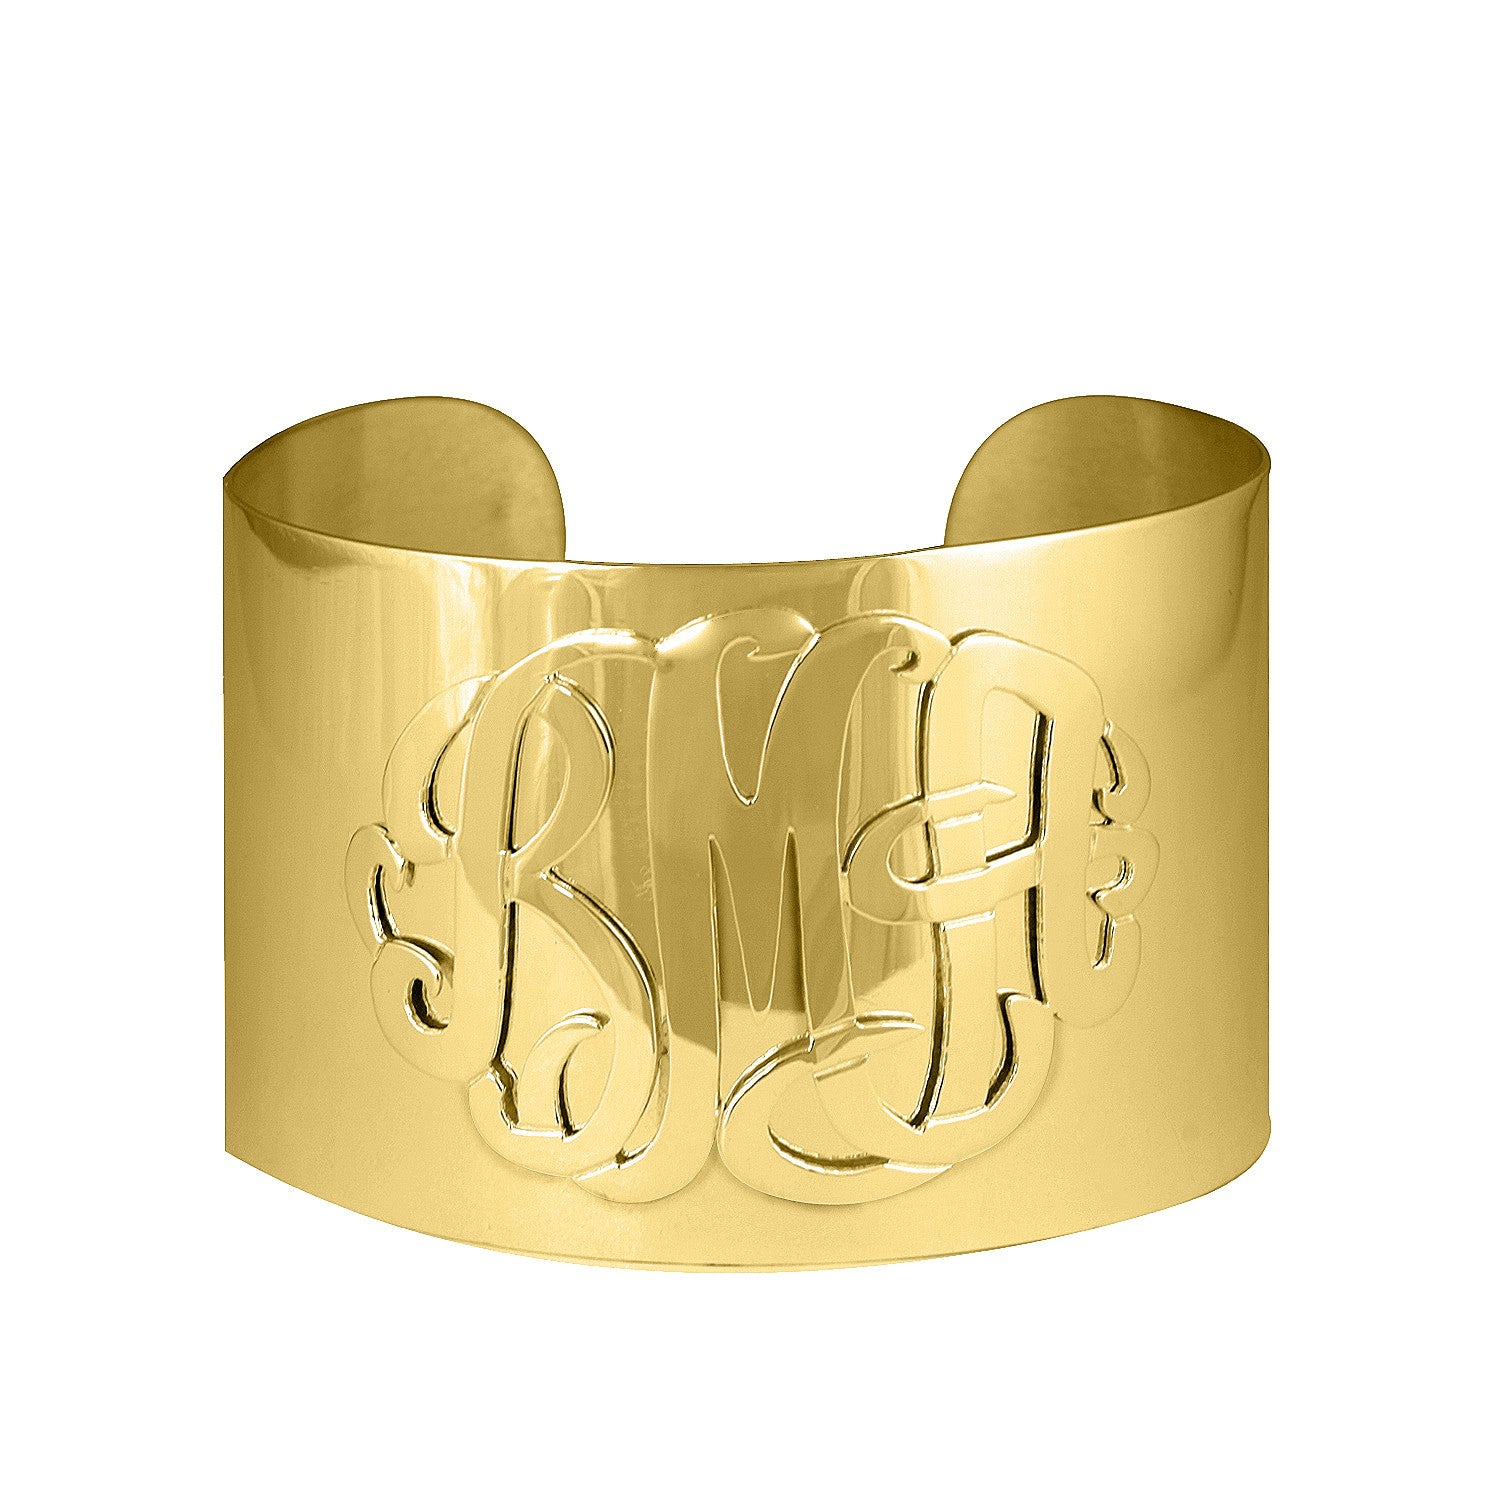 24K Gold Plated Monogram Wide Cuff Bracelet